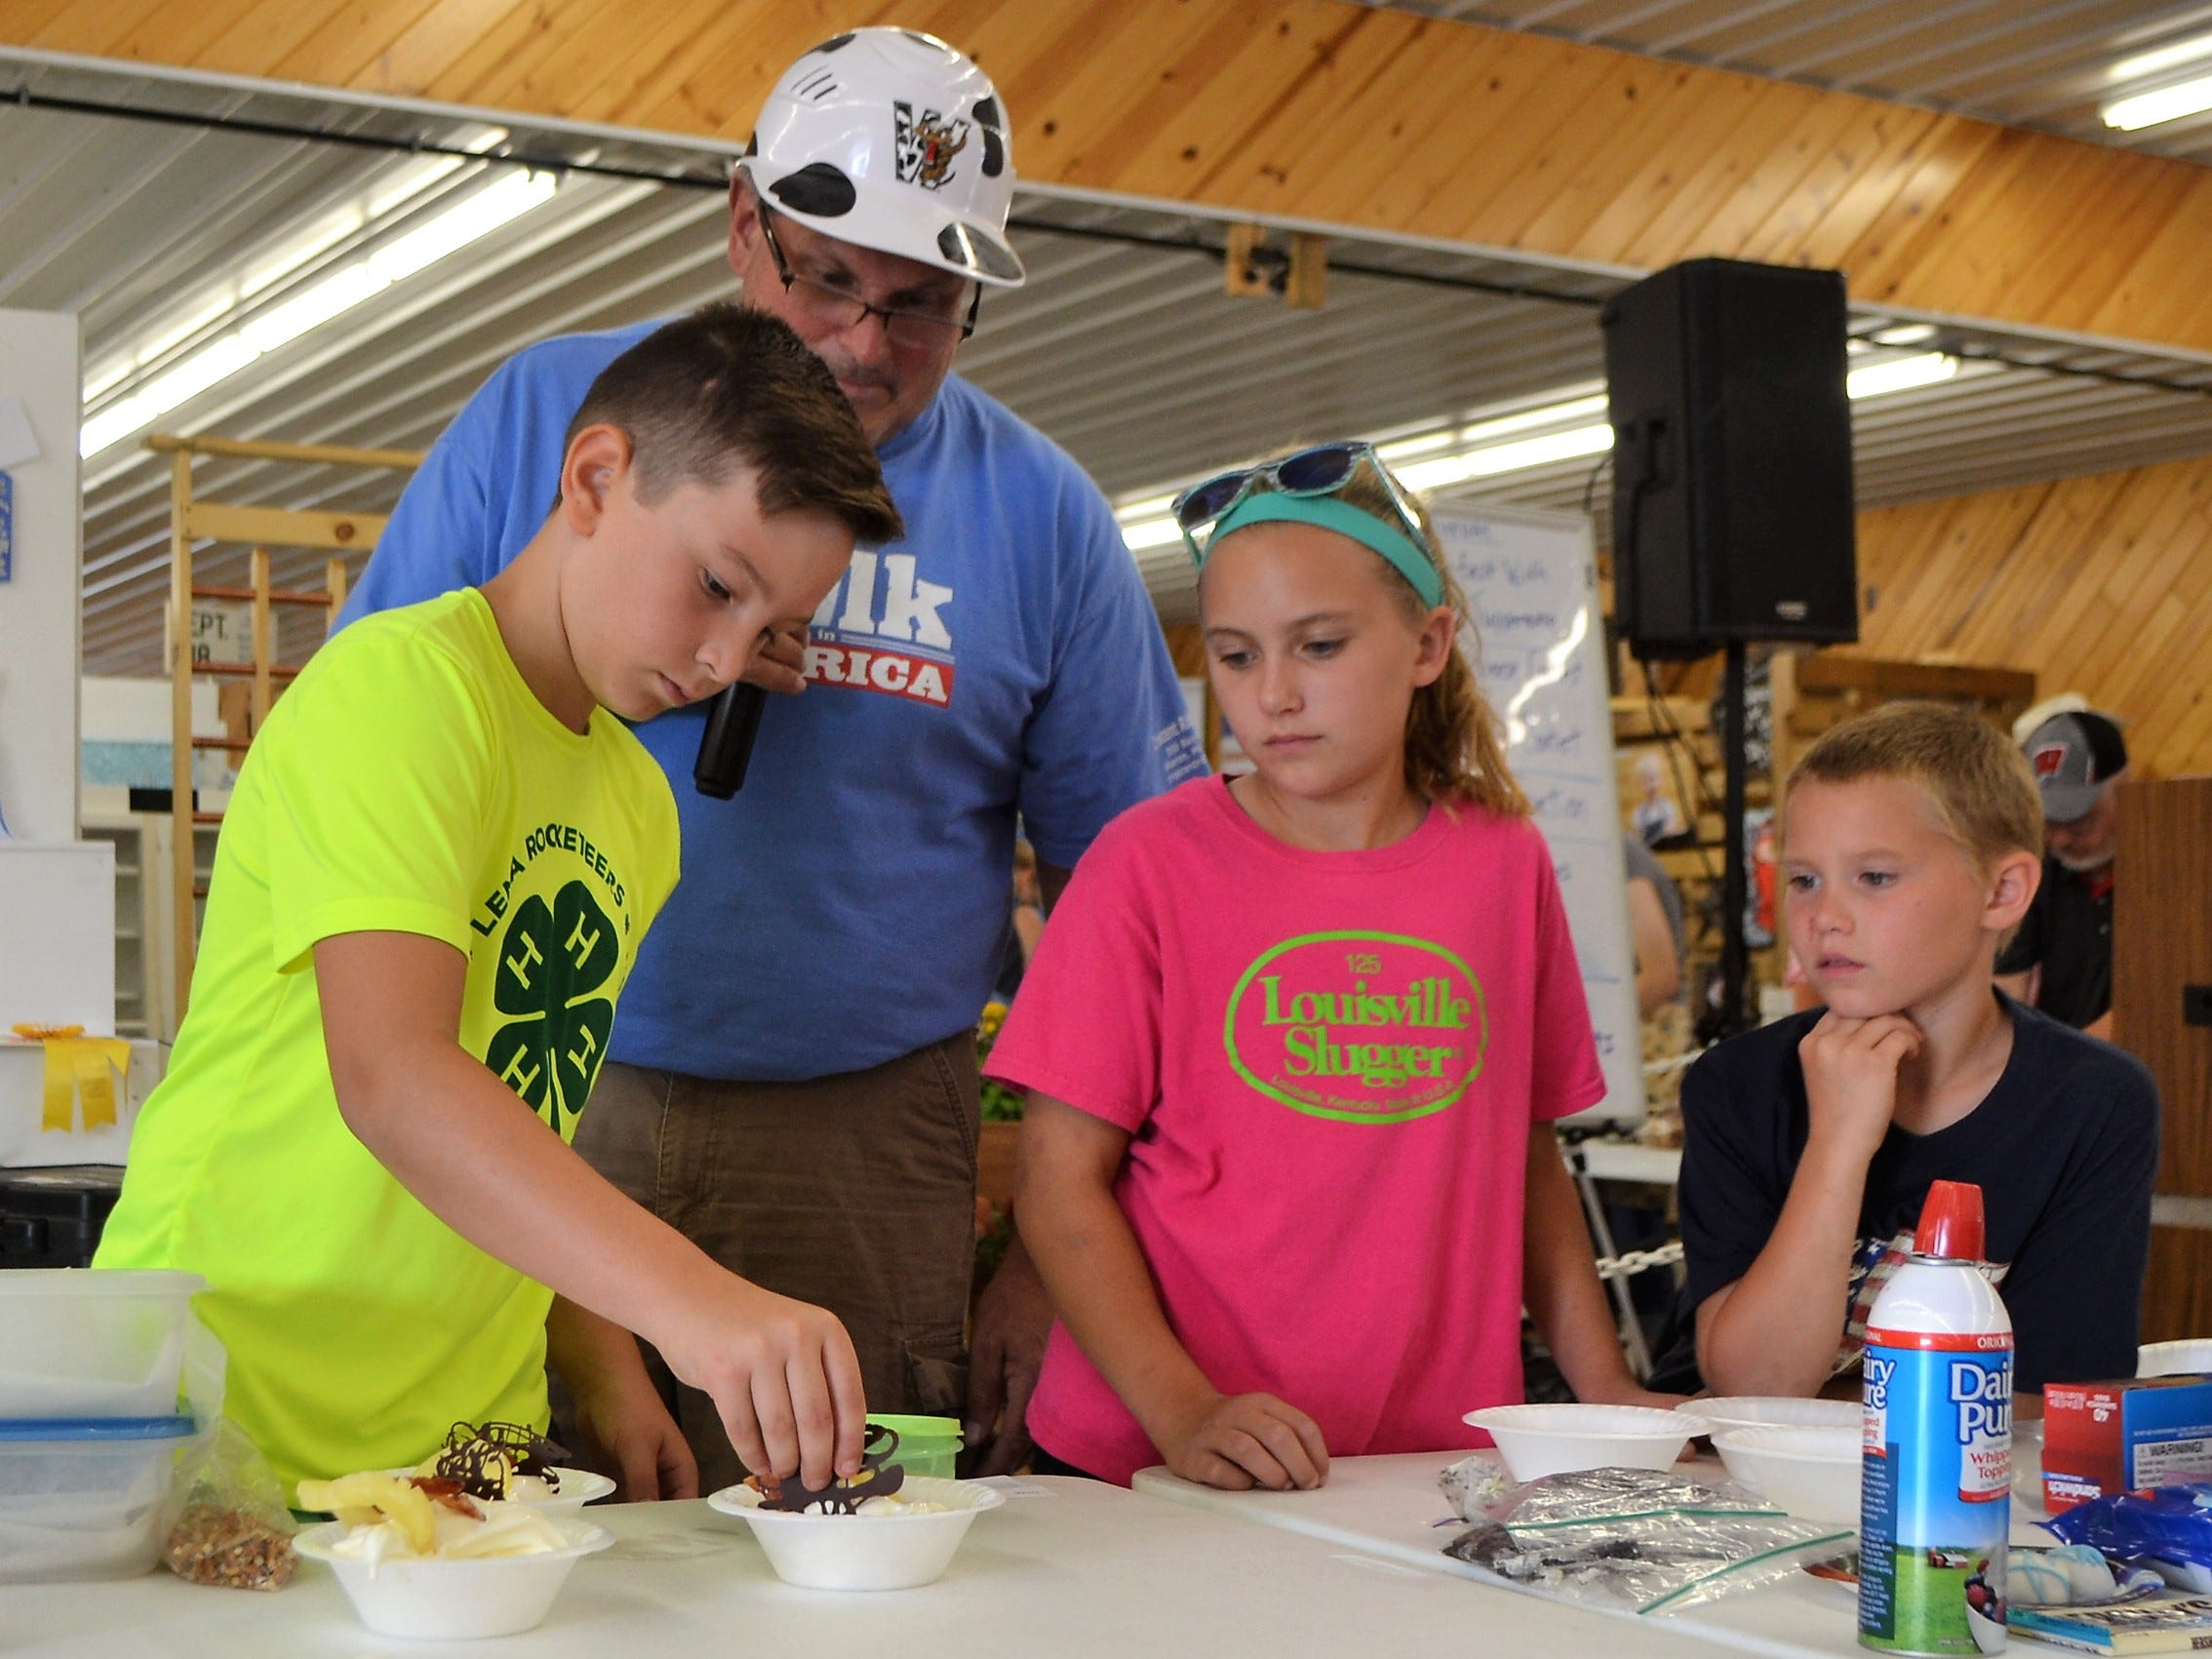 Vance Turcek, 11, of the Lena Rocketeers 4-H Club, places a piece of chocolate on top of sundae for judges in the Ice Cream Sundae competition at the Oconto County Fair on Saturday, Aug. 18. At right are the other two entrants, siblings Josie Holtz, 11, and Isaiah Holtz, 9, of Oconto Falls and members of Willing Workers 4-H Club. Looking on is Mark Alden of the Oconto County Dairy Promotion Board. Josie Holtz won first place.